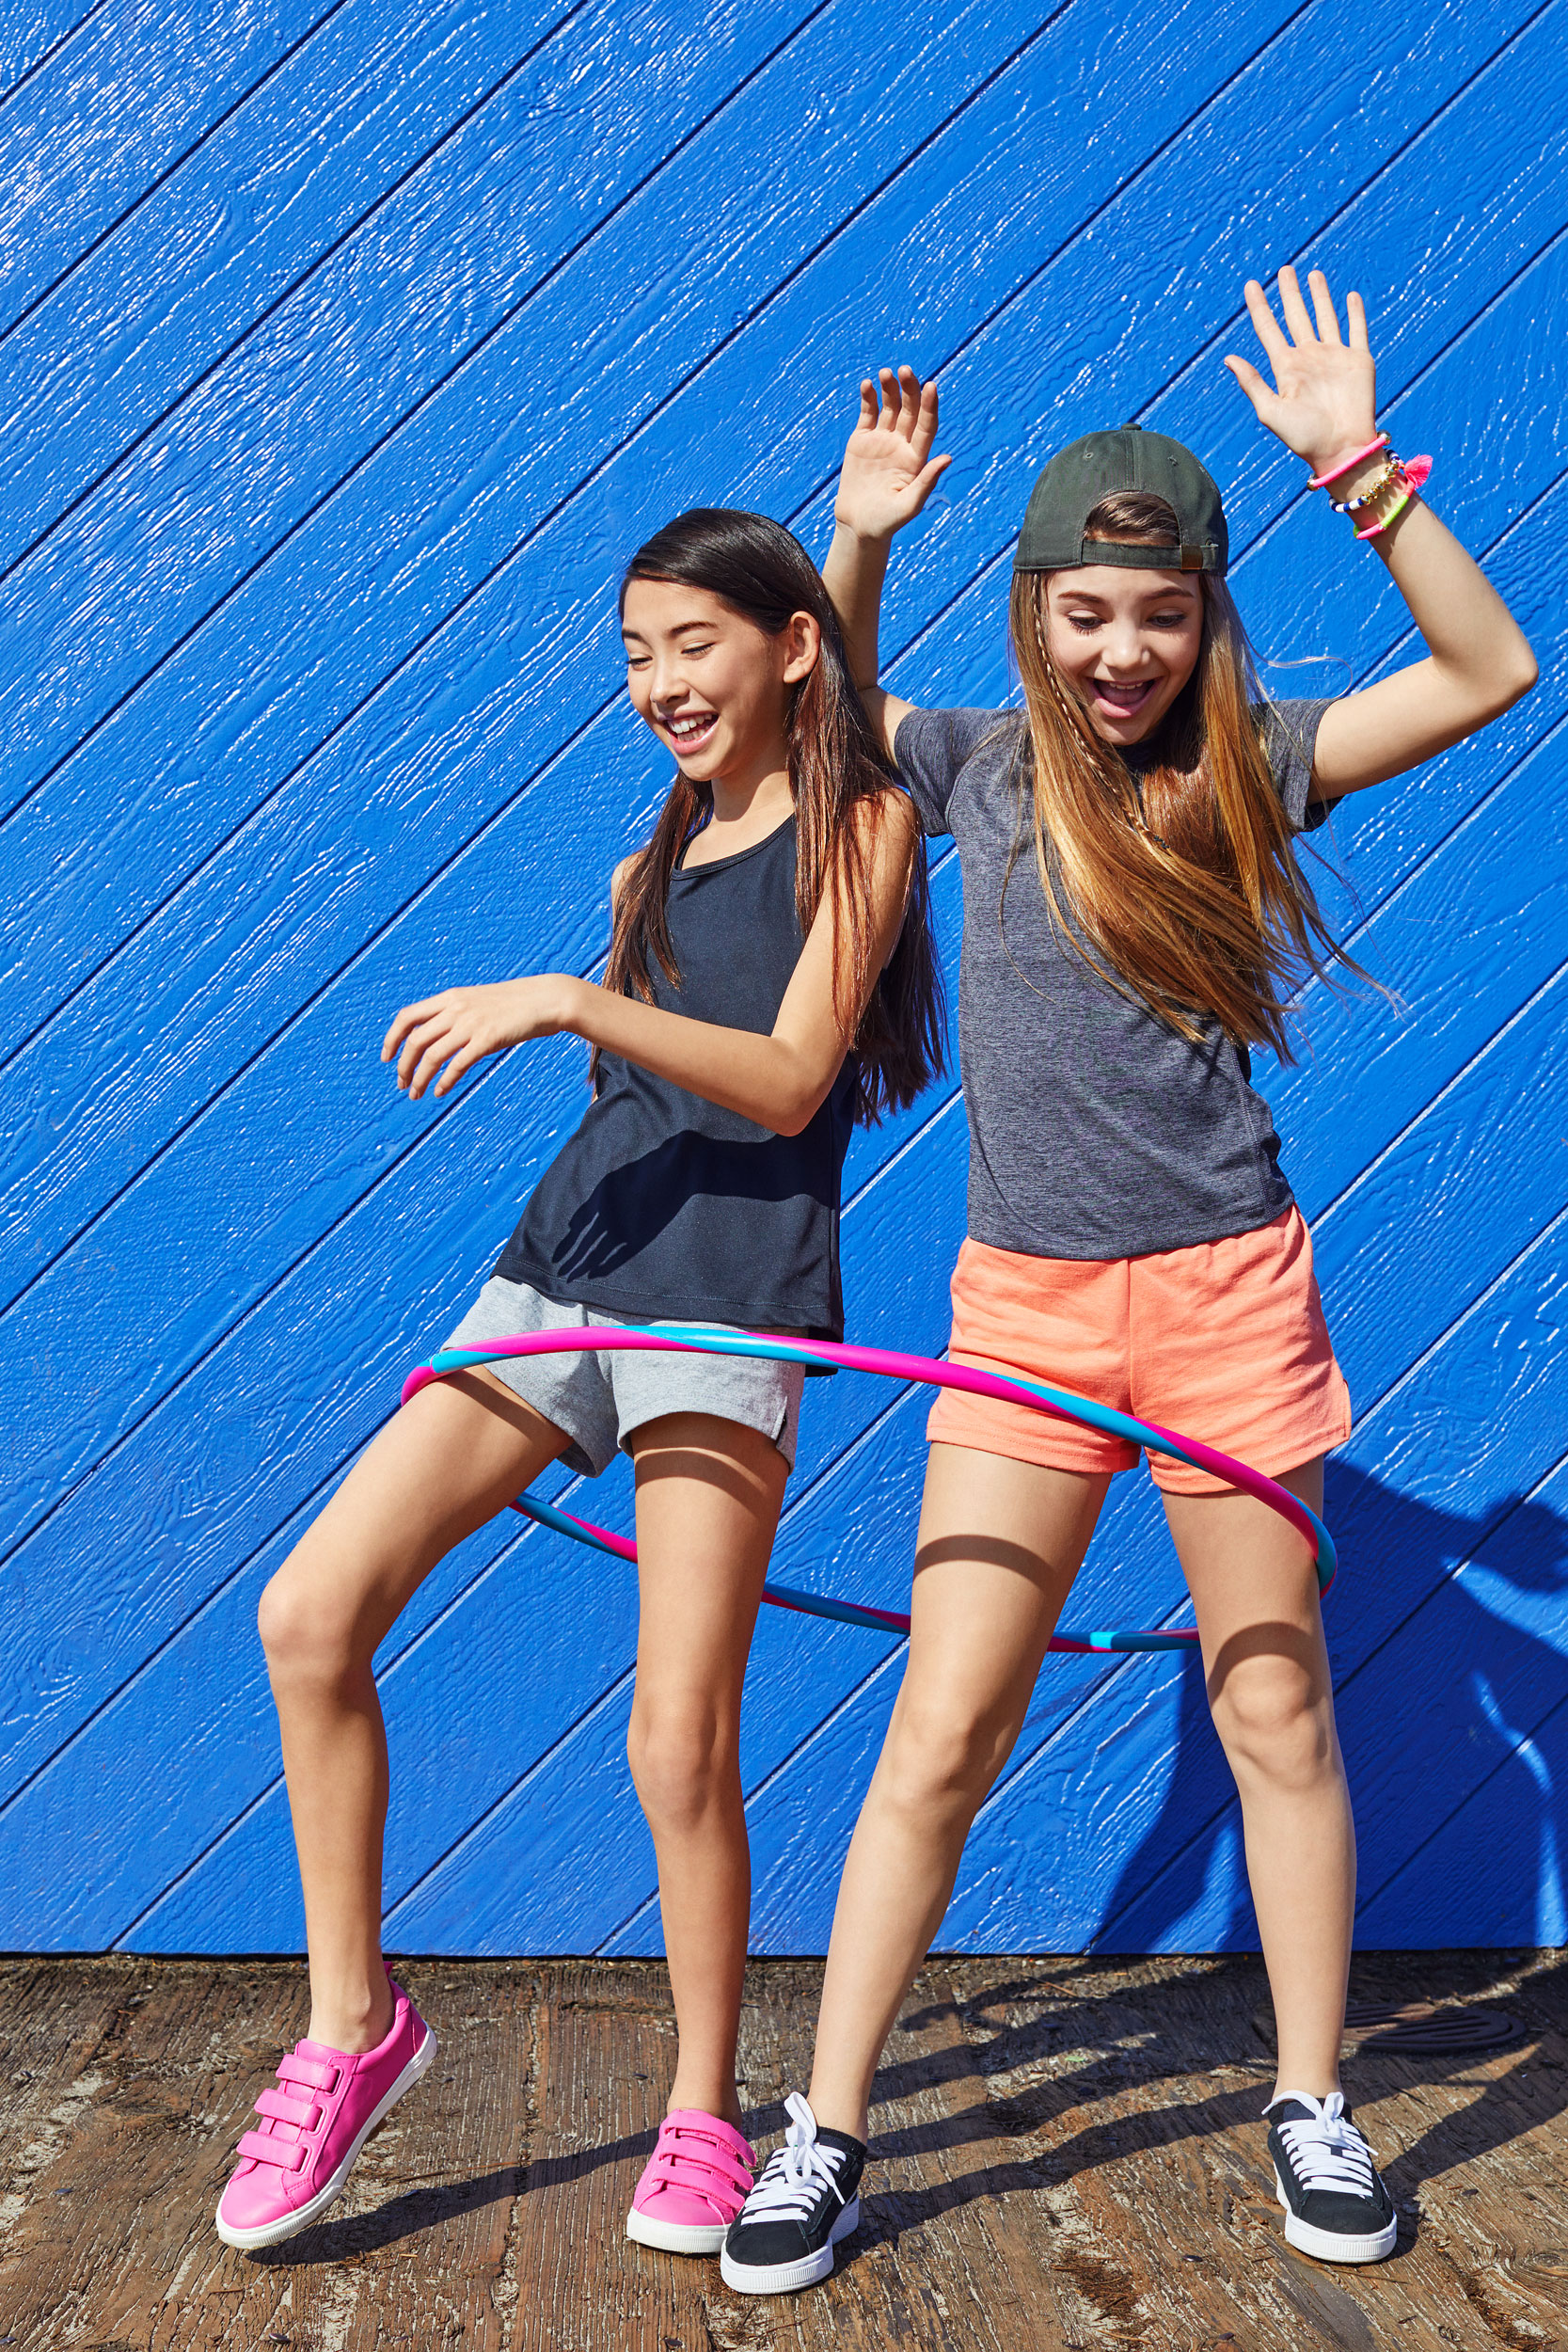 Girls laughing together trying to use one hula hoop - Kim Genevieve Los Angeles Lifestyle Photographer